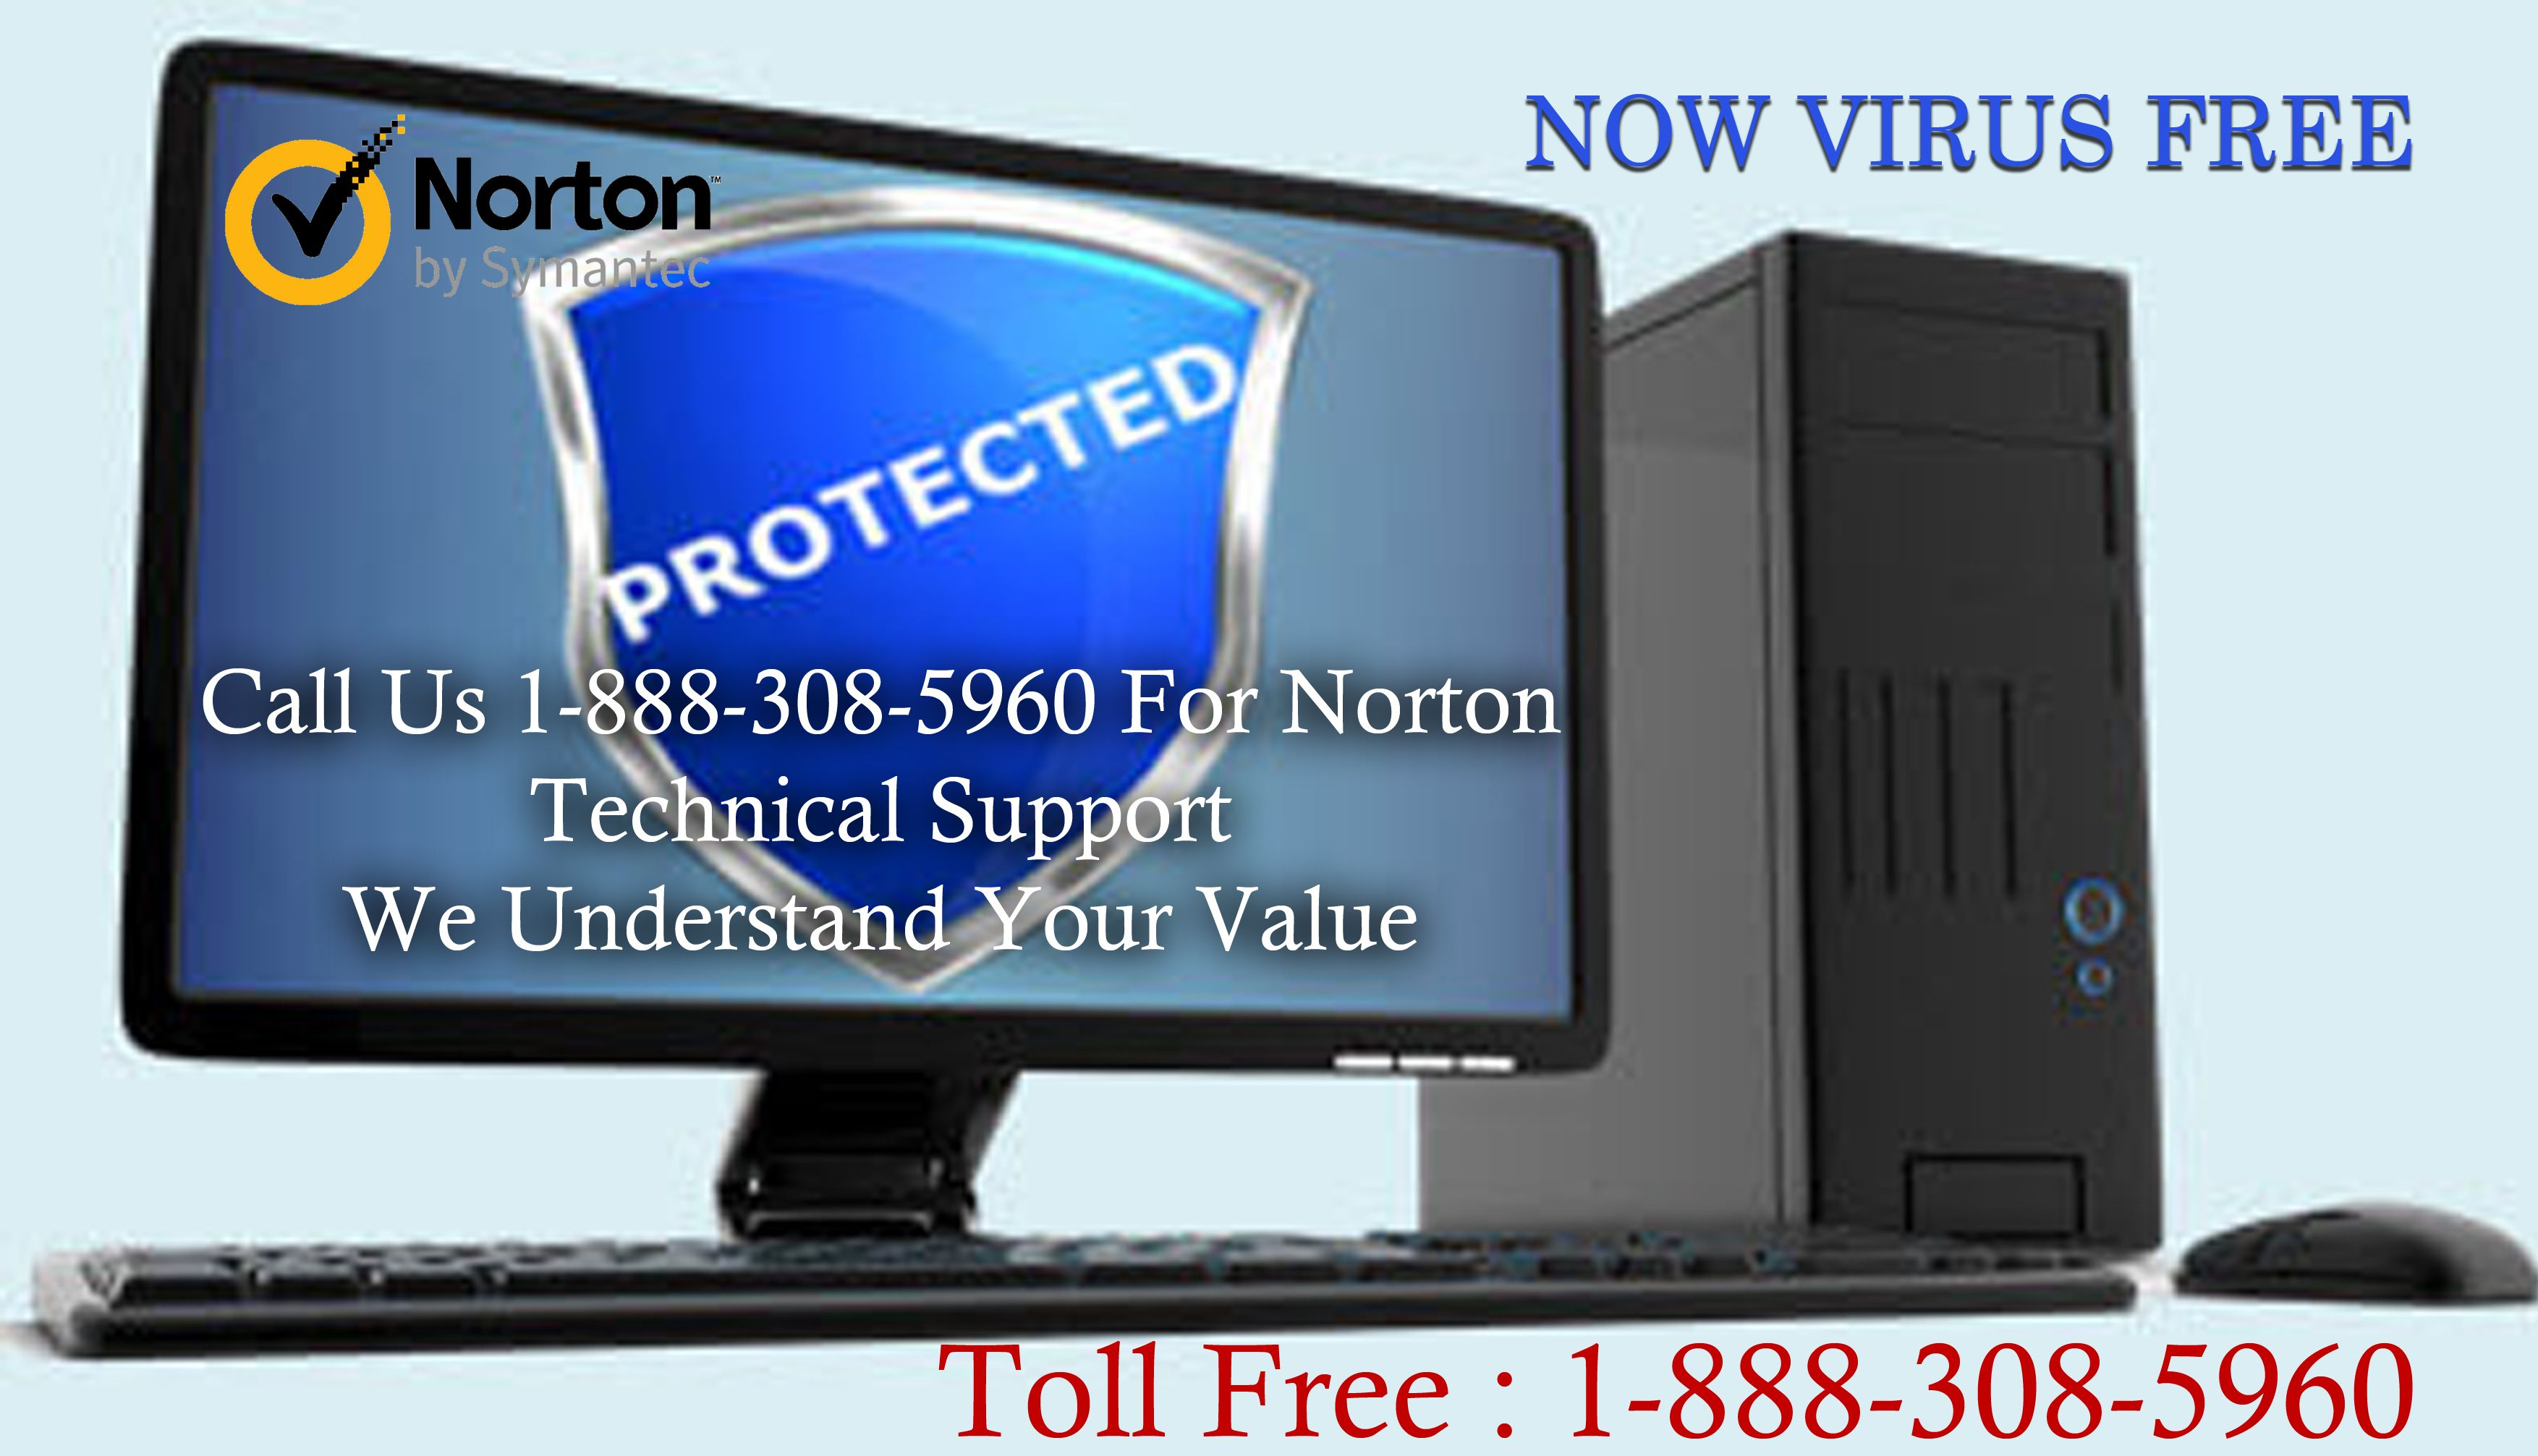 #Norton_Customer_Service allows you to access through any website without being anxious about any specific website. It provides the internet security and helps to scan and clean the driver if need in any particular case.